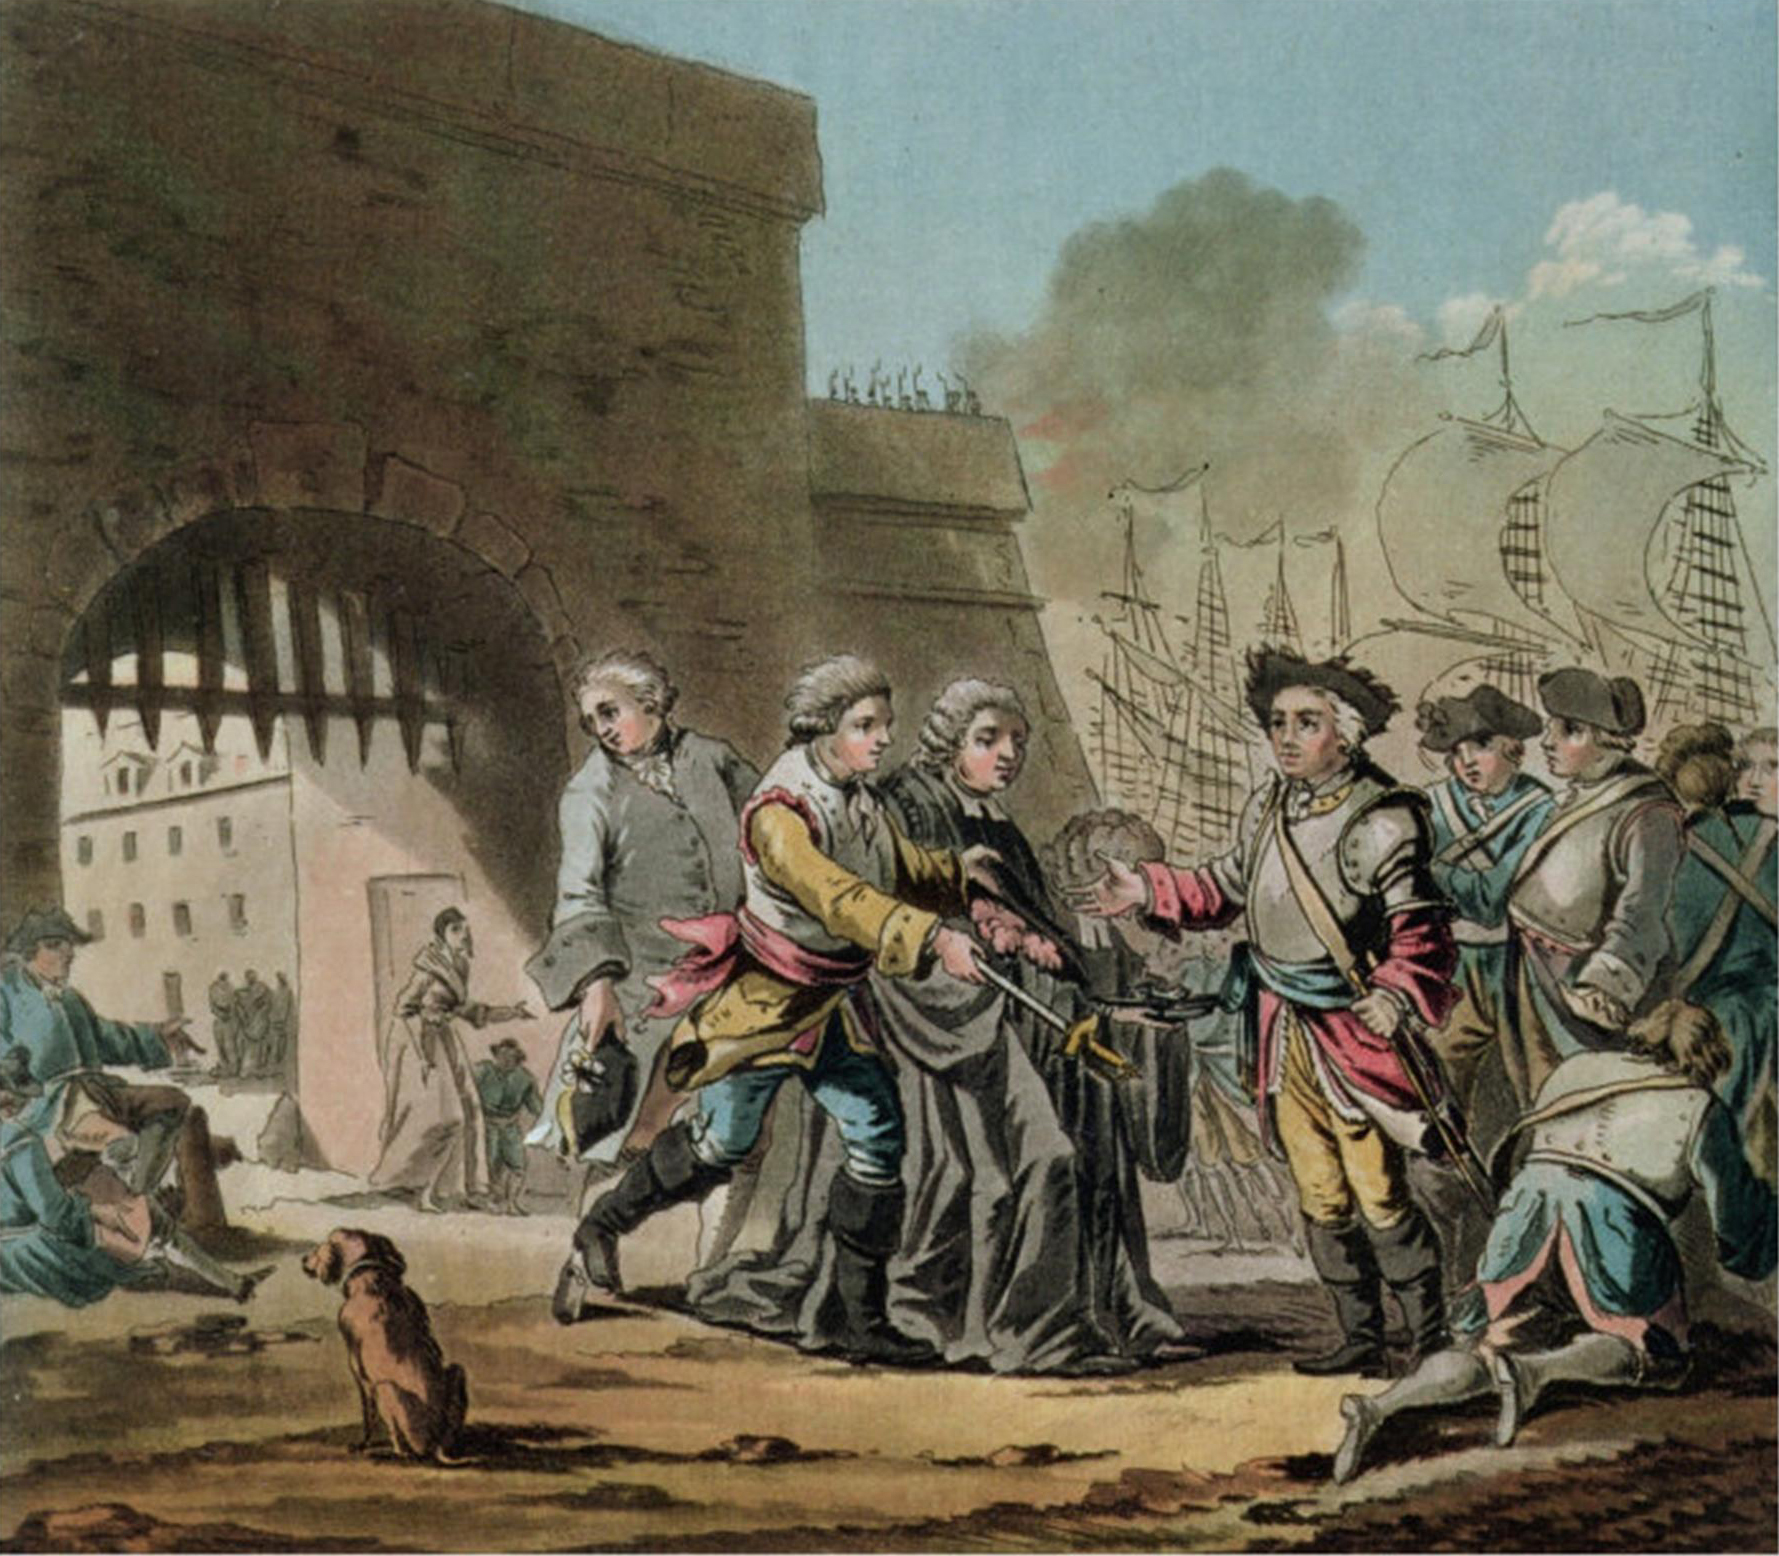 A history of the french and indian war fought between britain and france